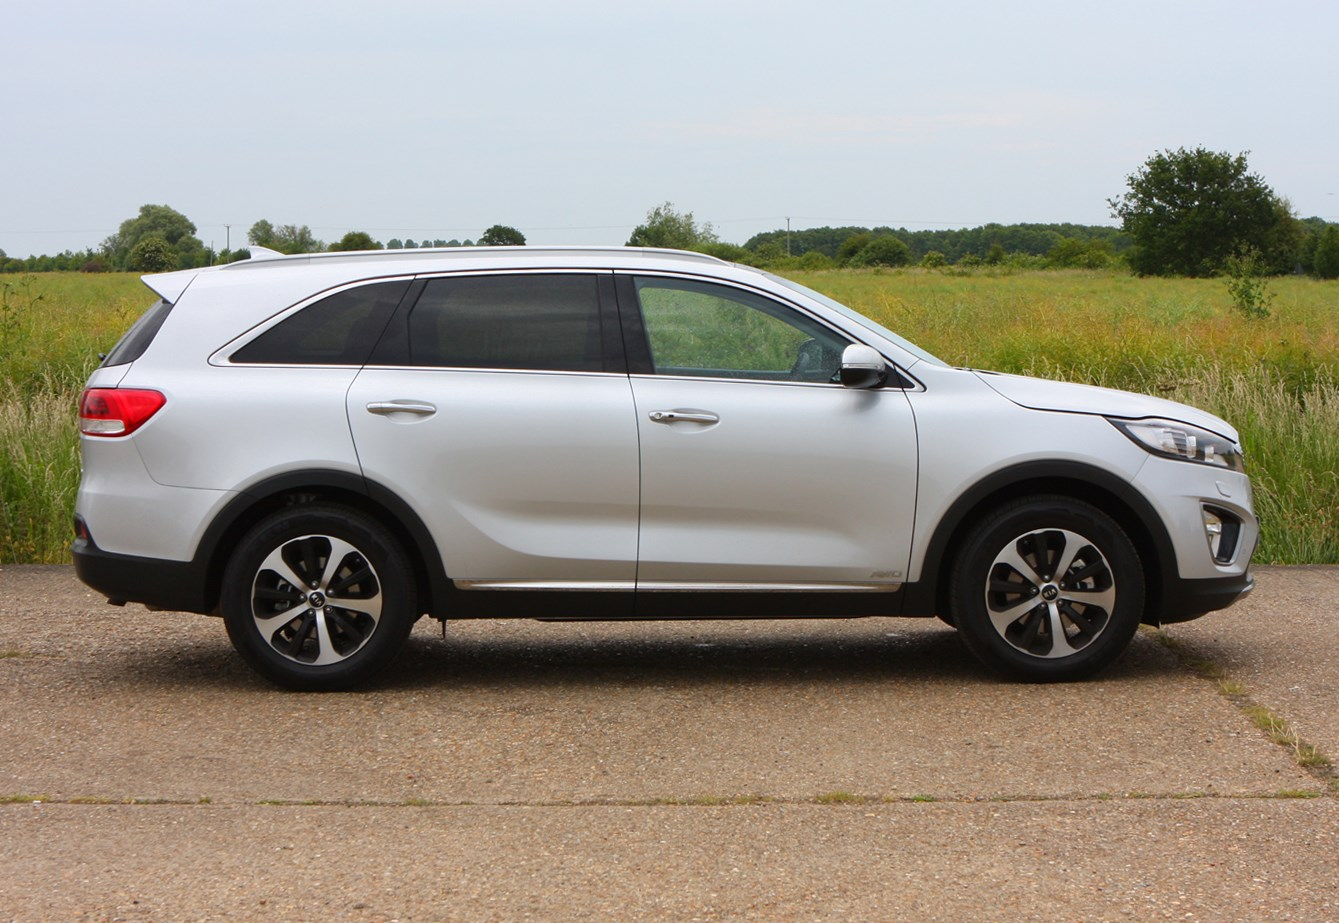 2019 Kia Sorento Reviews | Kia Sorento Price, Photos, and ...